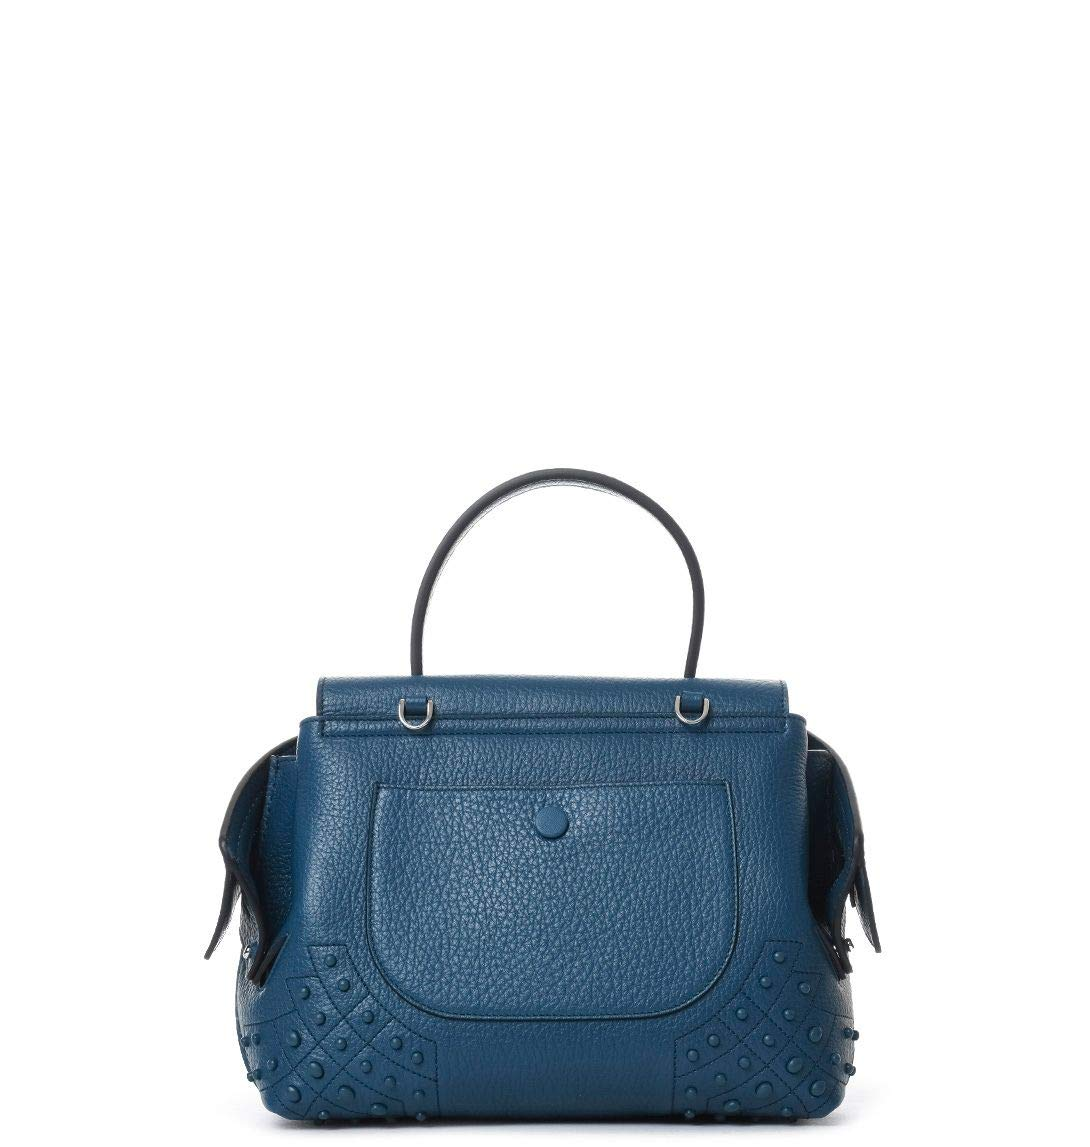 Tods Womens Xbwamrhg101srkt612 Blue Leather Tote